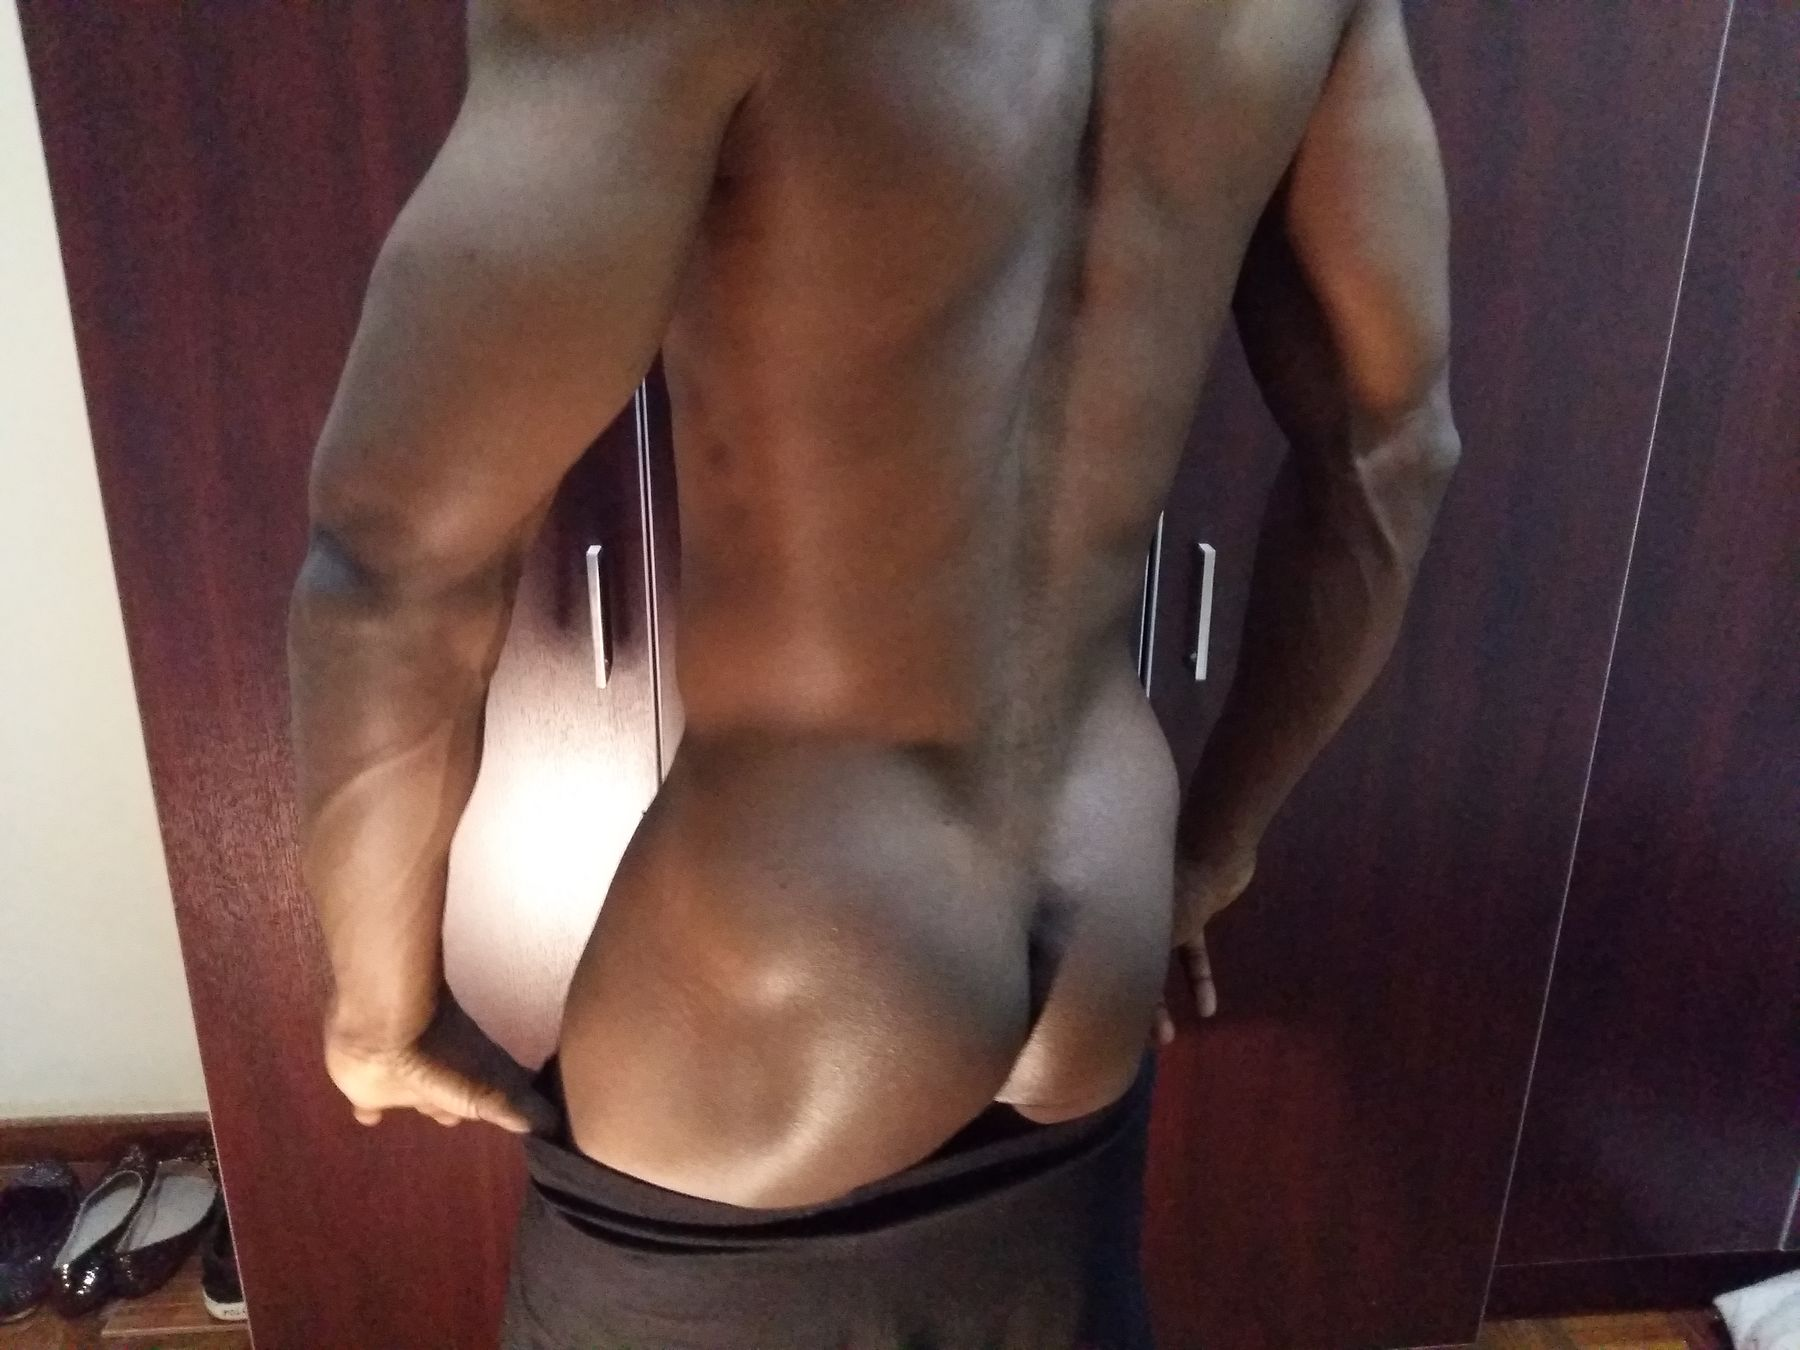 Gay male Massage South Africa Masseurfinder South Africa